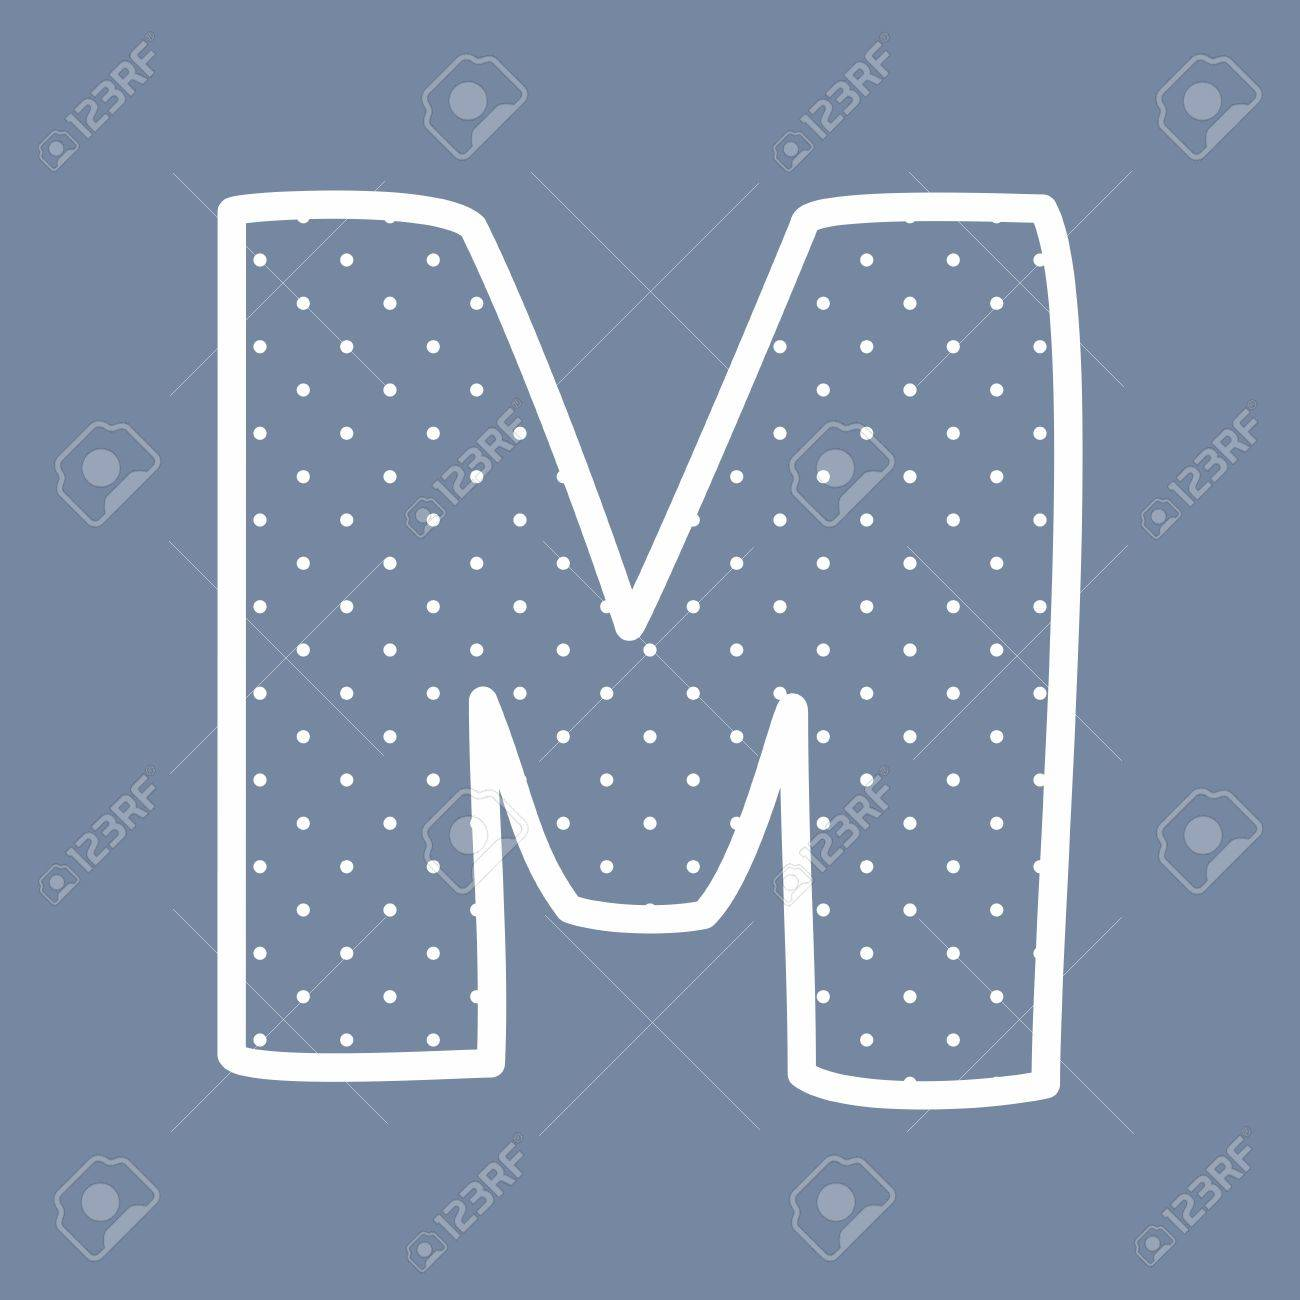 M Hand Drawn Letter With Small White Polka Dots On Blue Background